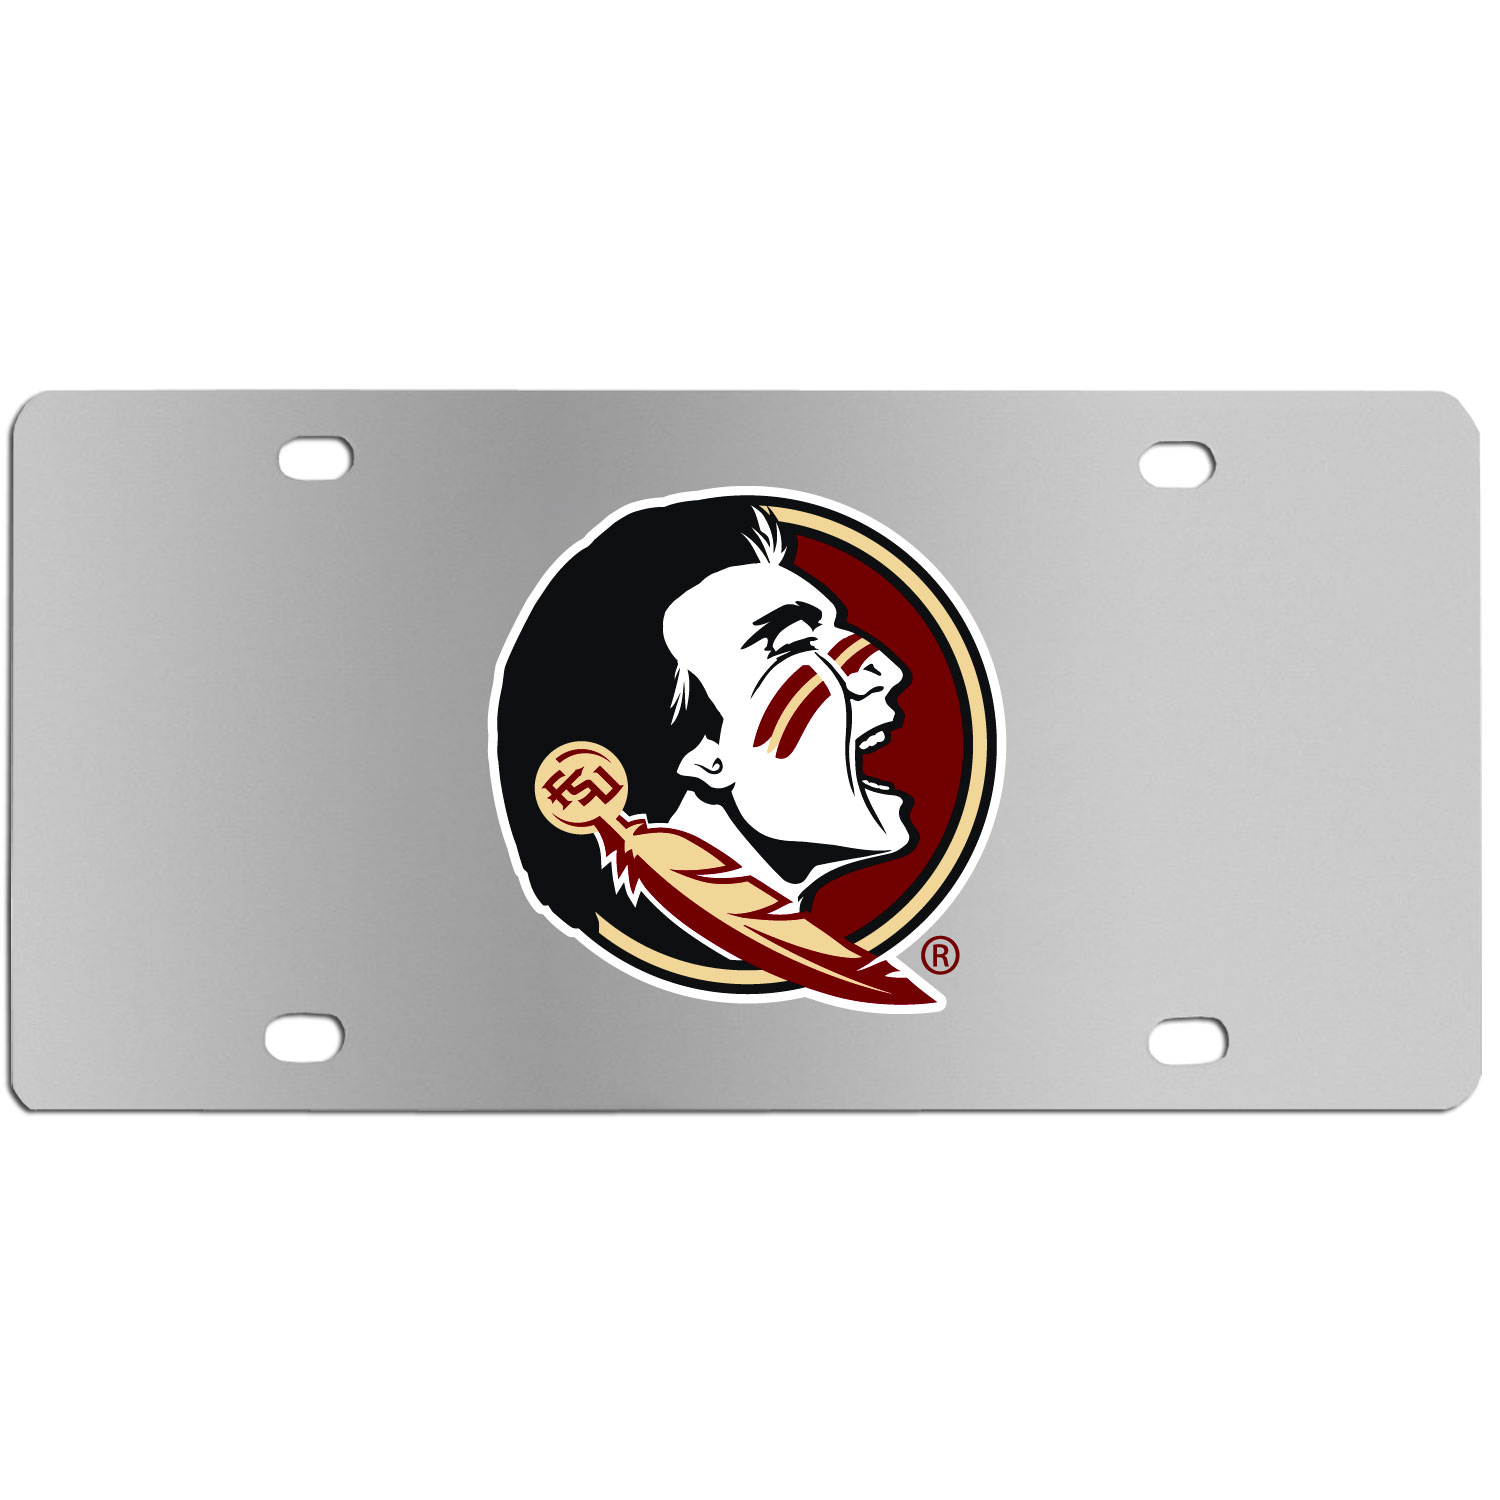 Florida St. Seminoles Steel License Plate Wall Plaque - This high-quality stainless steel license plate features a detailed team logo on a the polished surface. The attractive plate is perfect for wall mounting in your home or office to become the perfect die-hard Florida St. Seminoles fan decor.